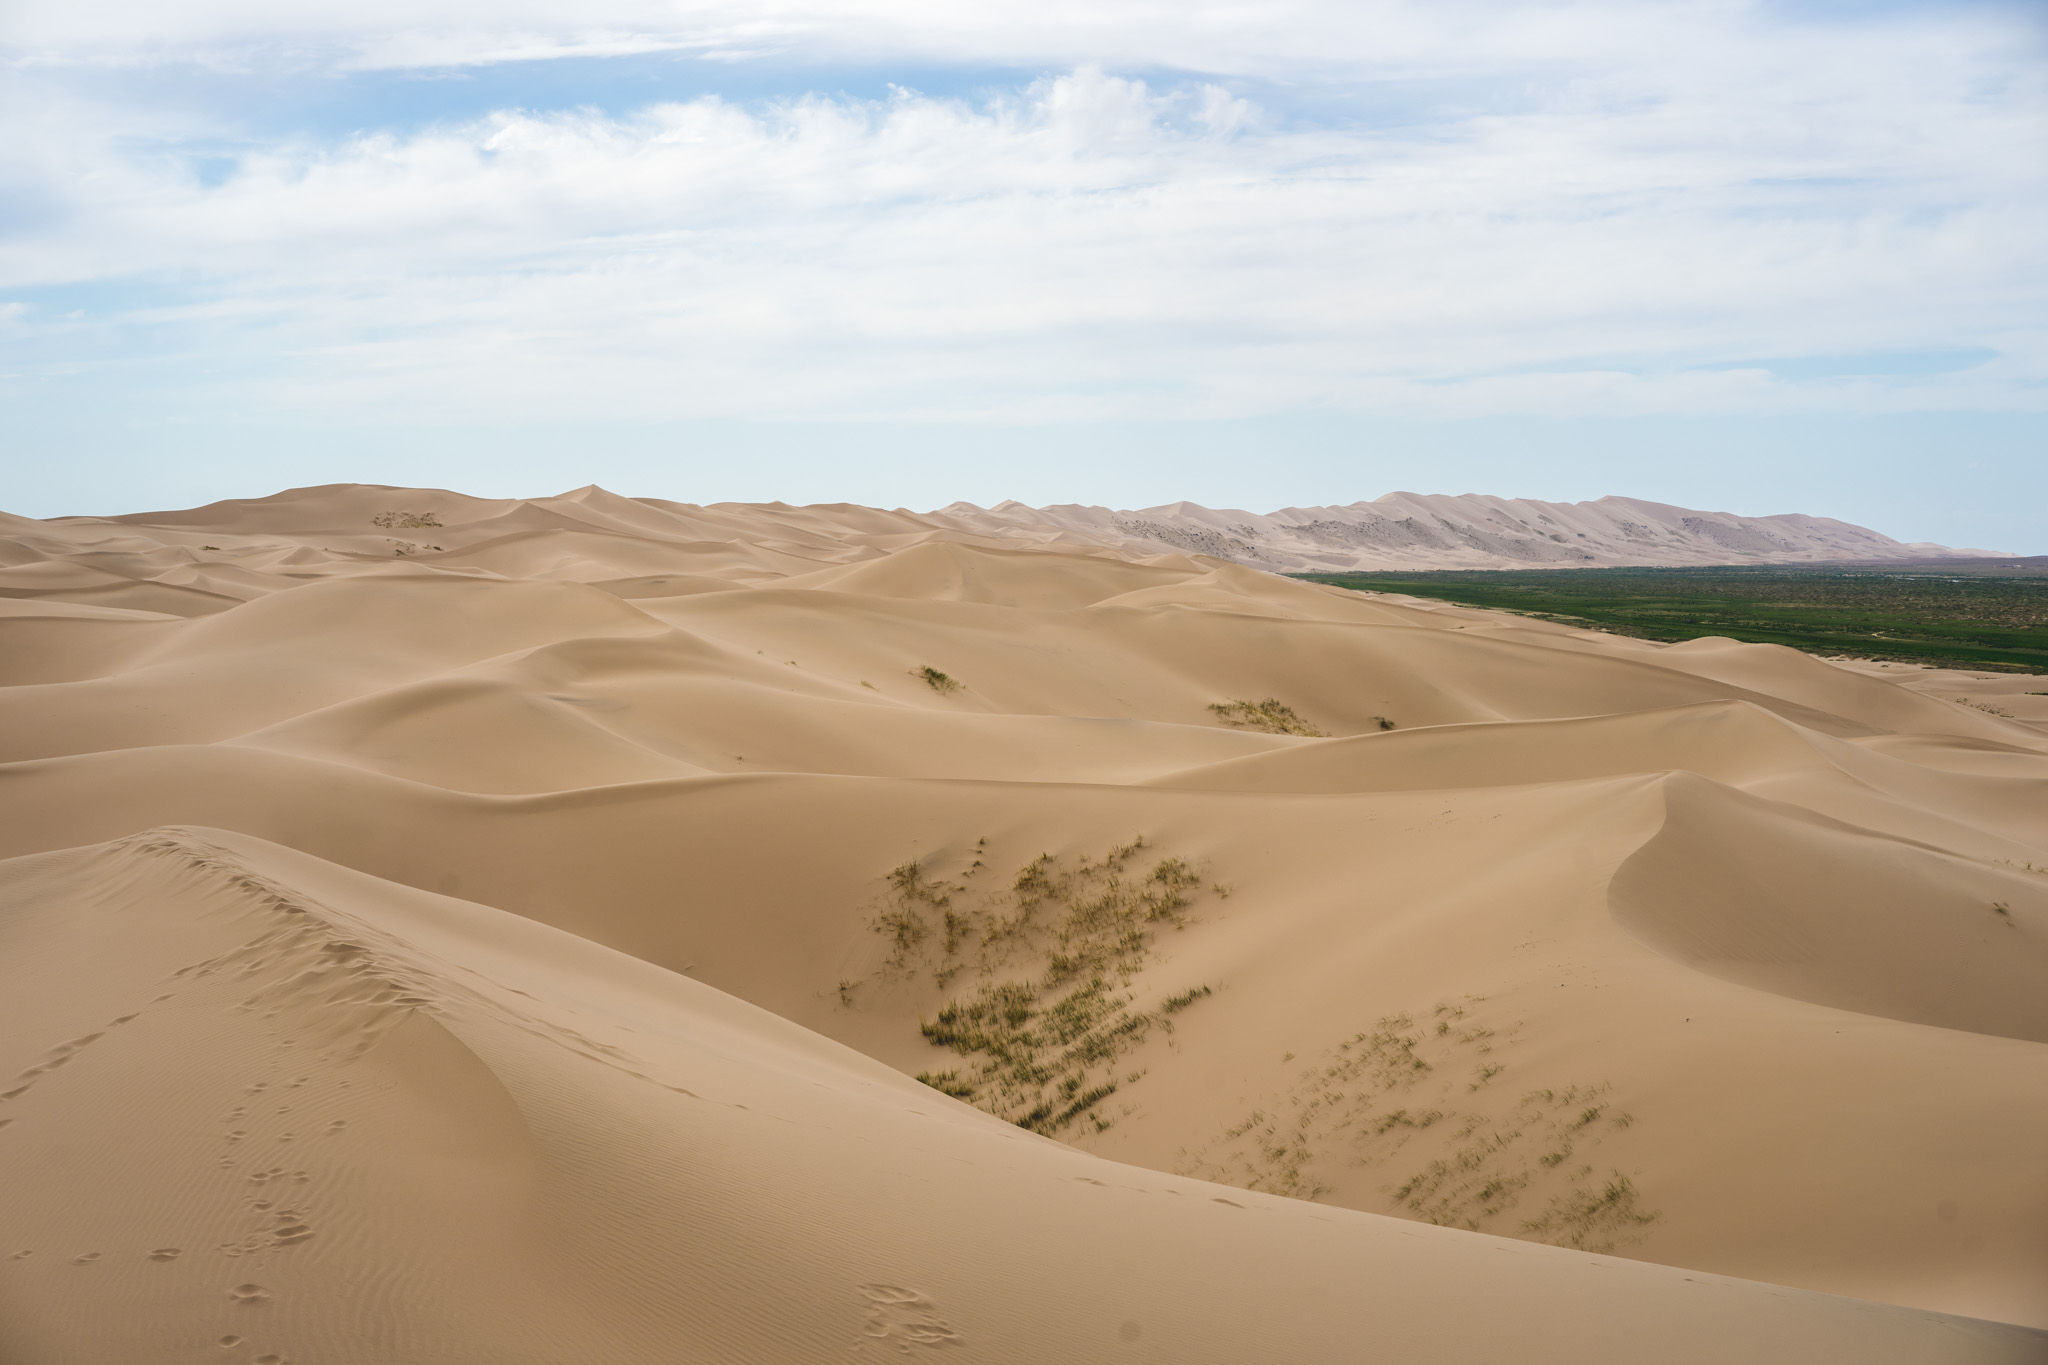 Endless sand dunes in the Gobi Desert